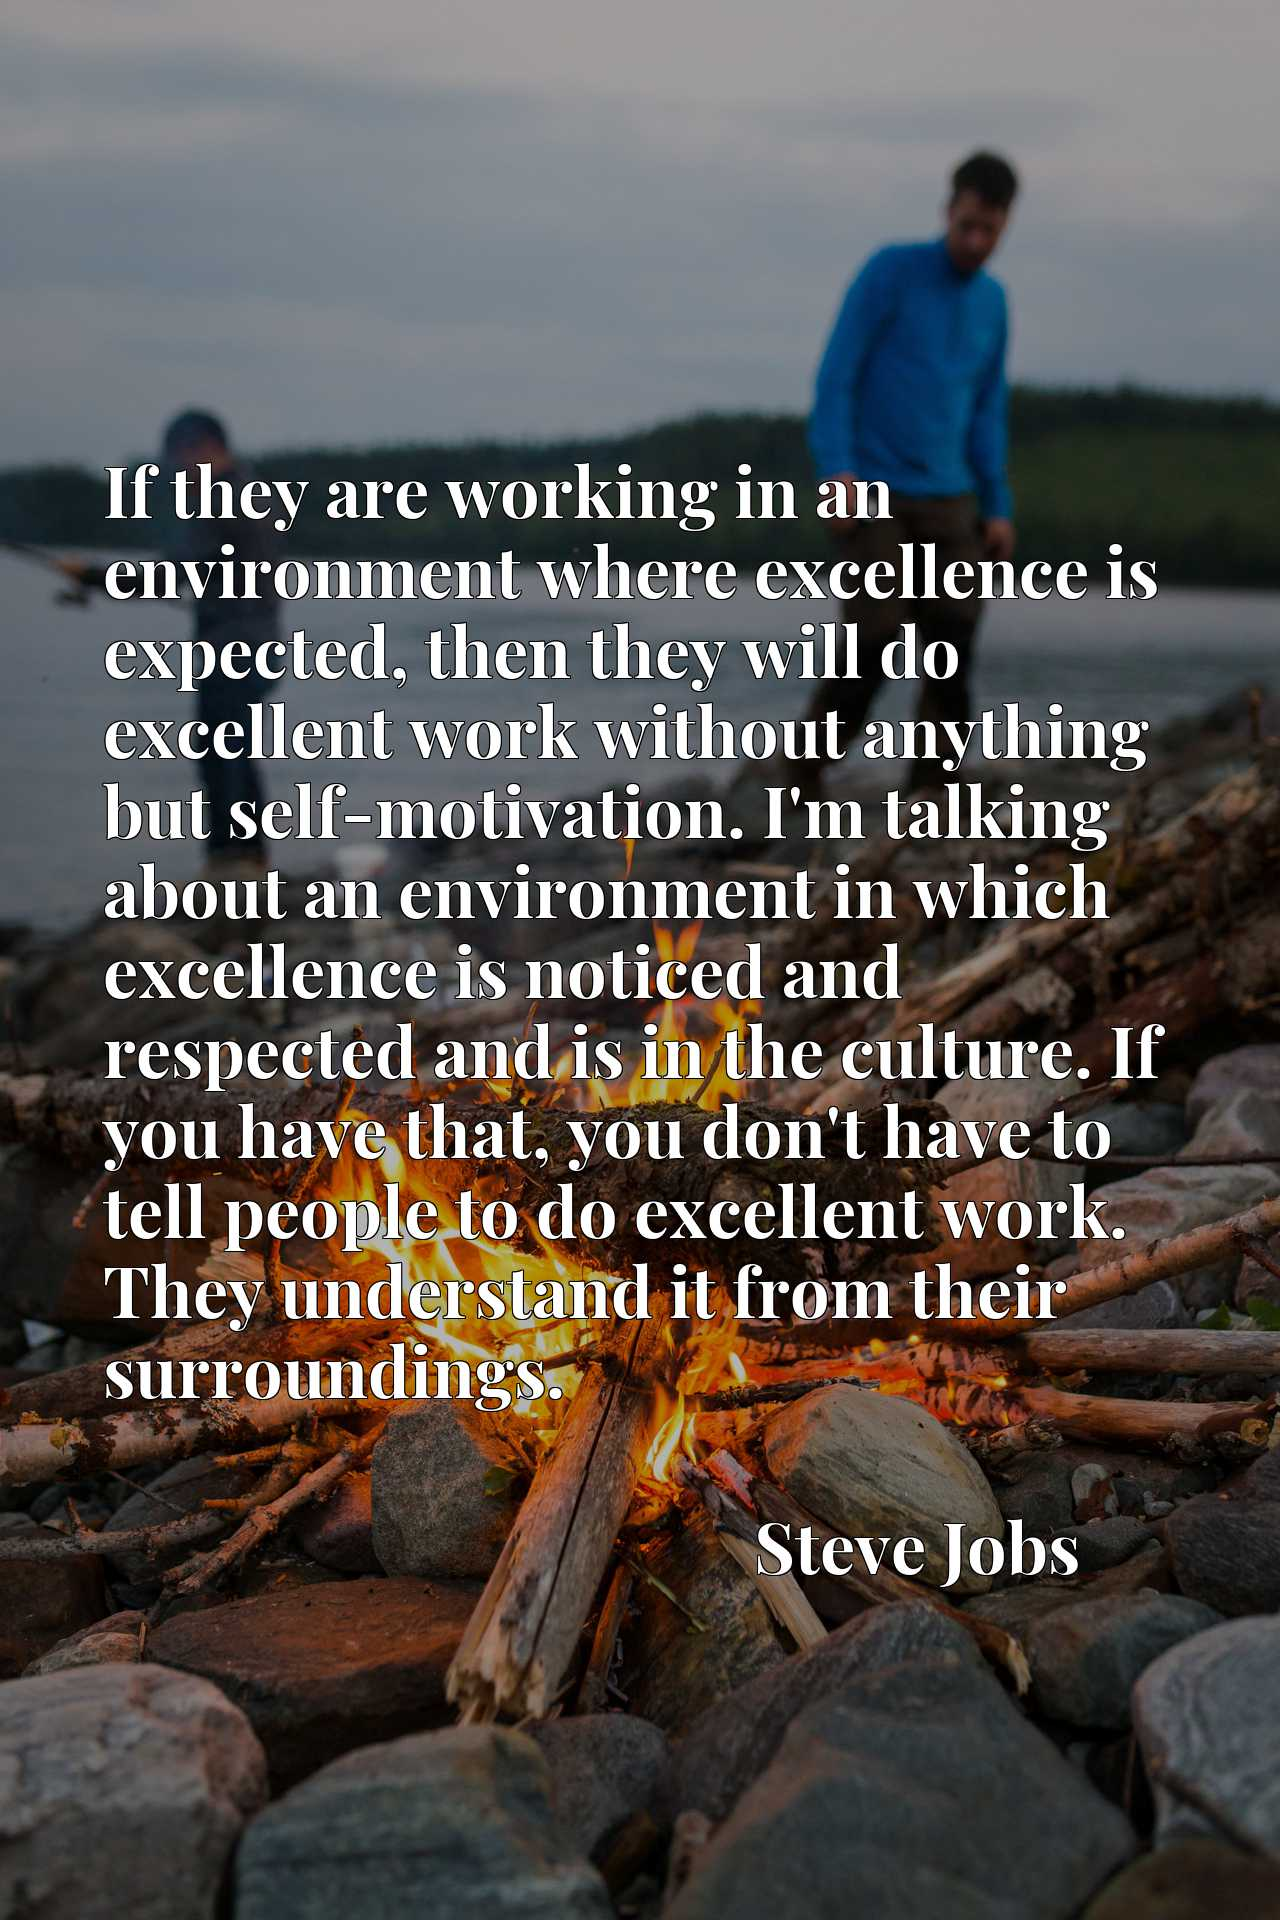 If they are working in an environment where excellence is expected, then they will do excellent work without anything but self-motivation. I'm talking about an environment in which excellence is noticed and respected and is in the culture. If you have that, you don't have to tell people to do excellent work. They understand it from their surroundings.